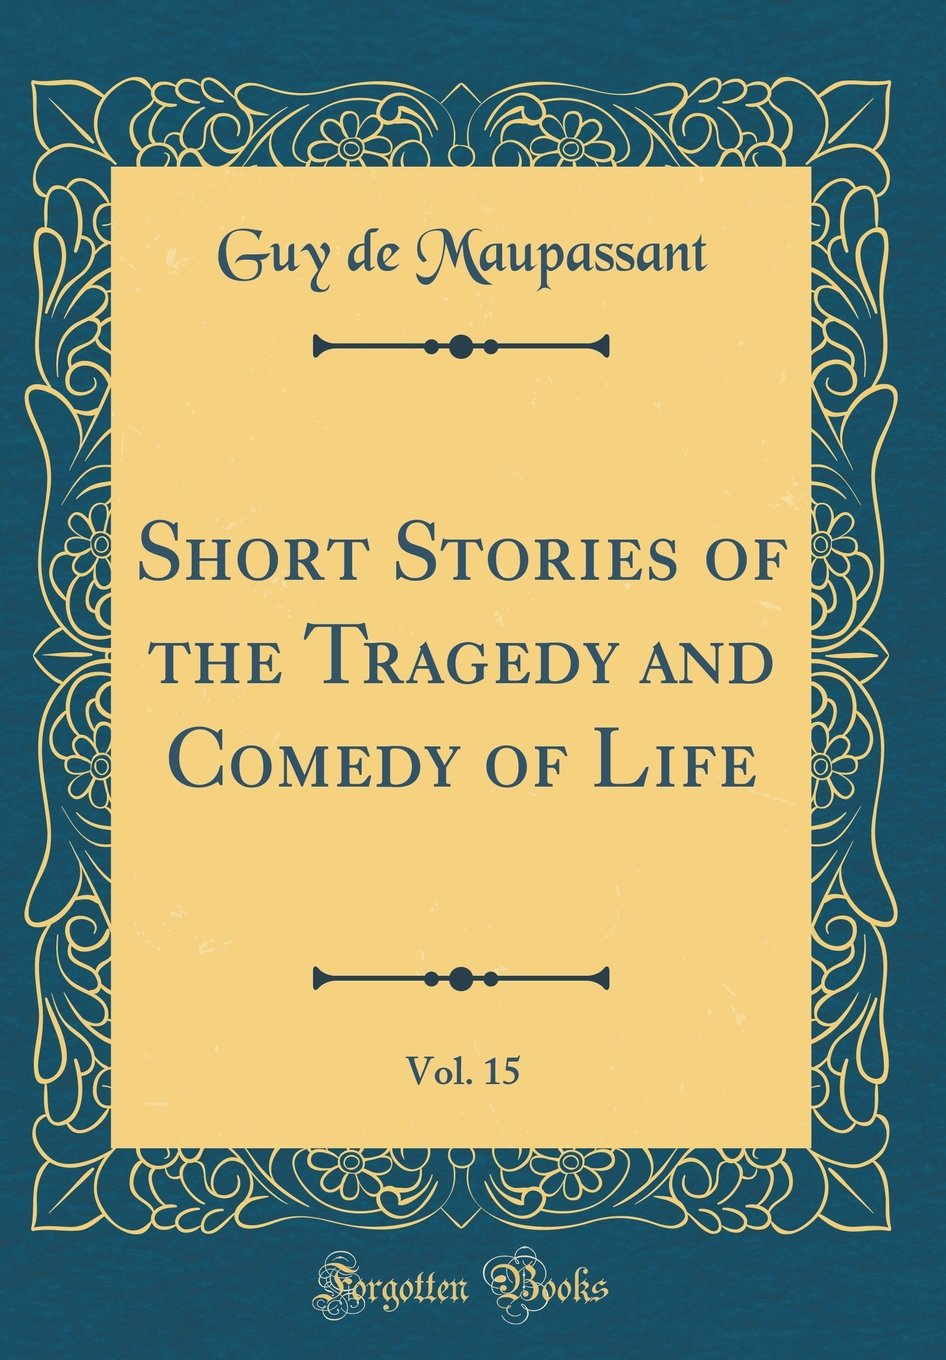 Short Stories of the Tragedy and Comedy of Life, Vol. 15 (Classic Reprint) pdf